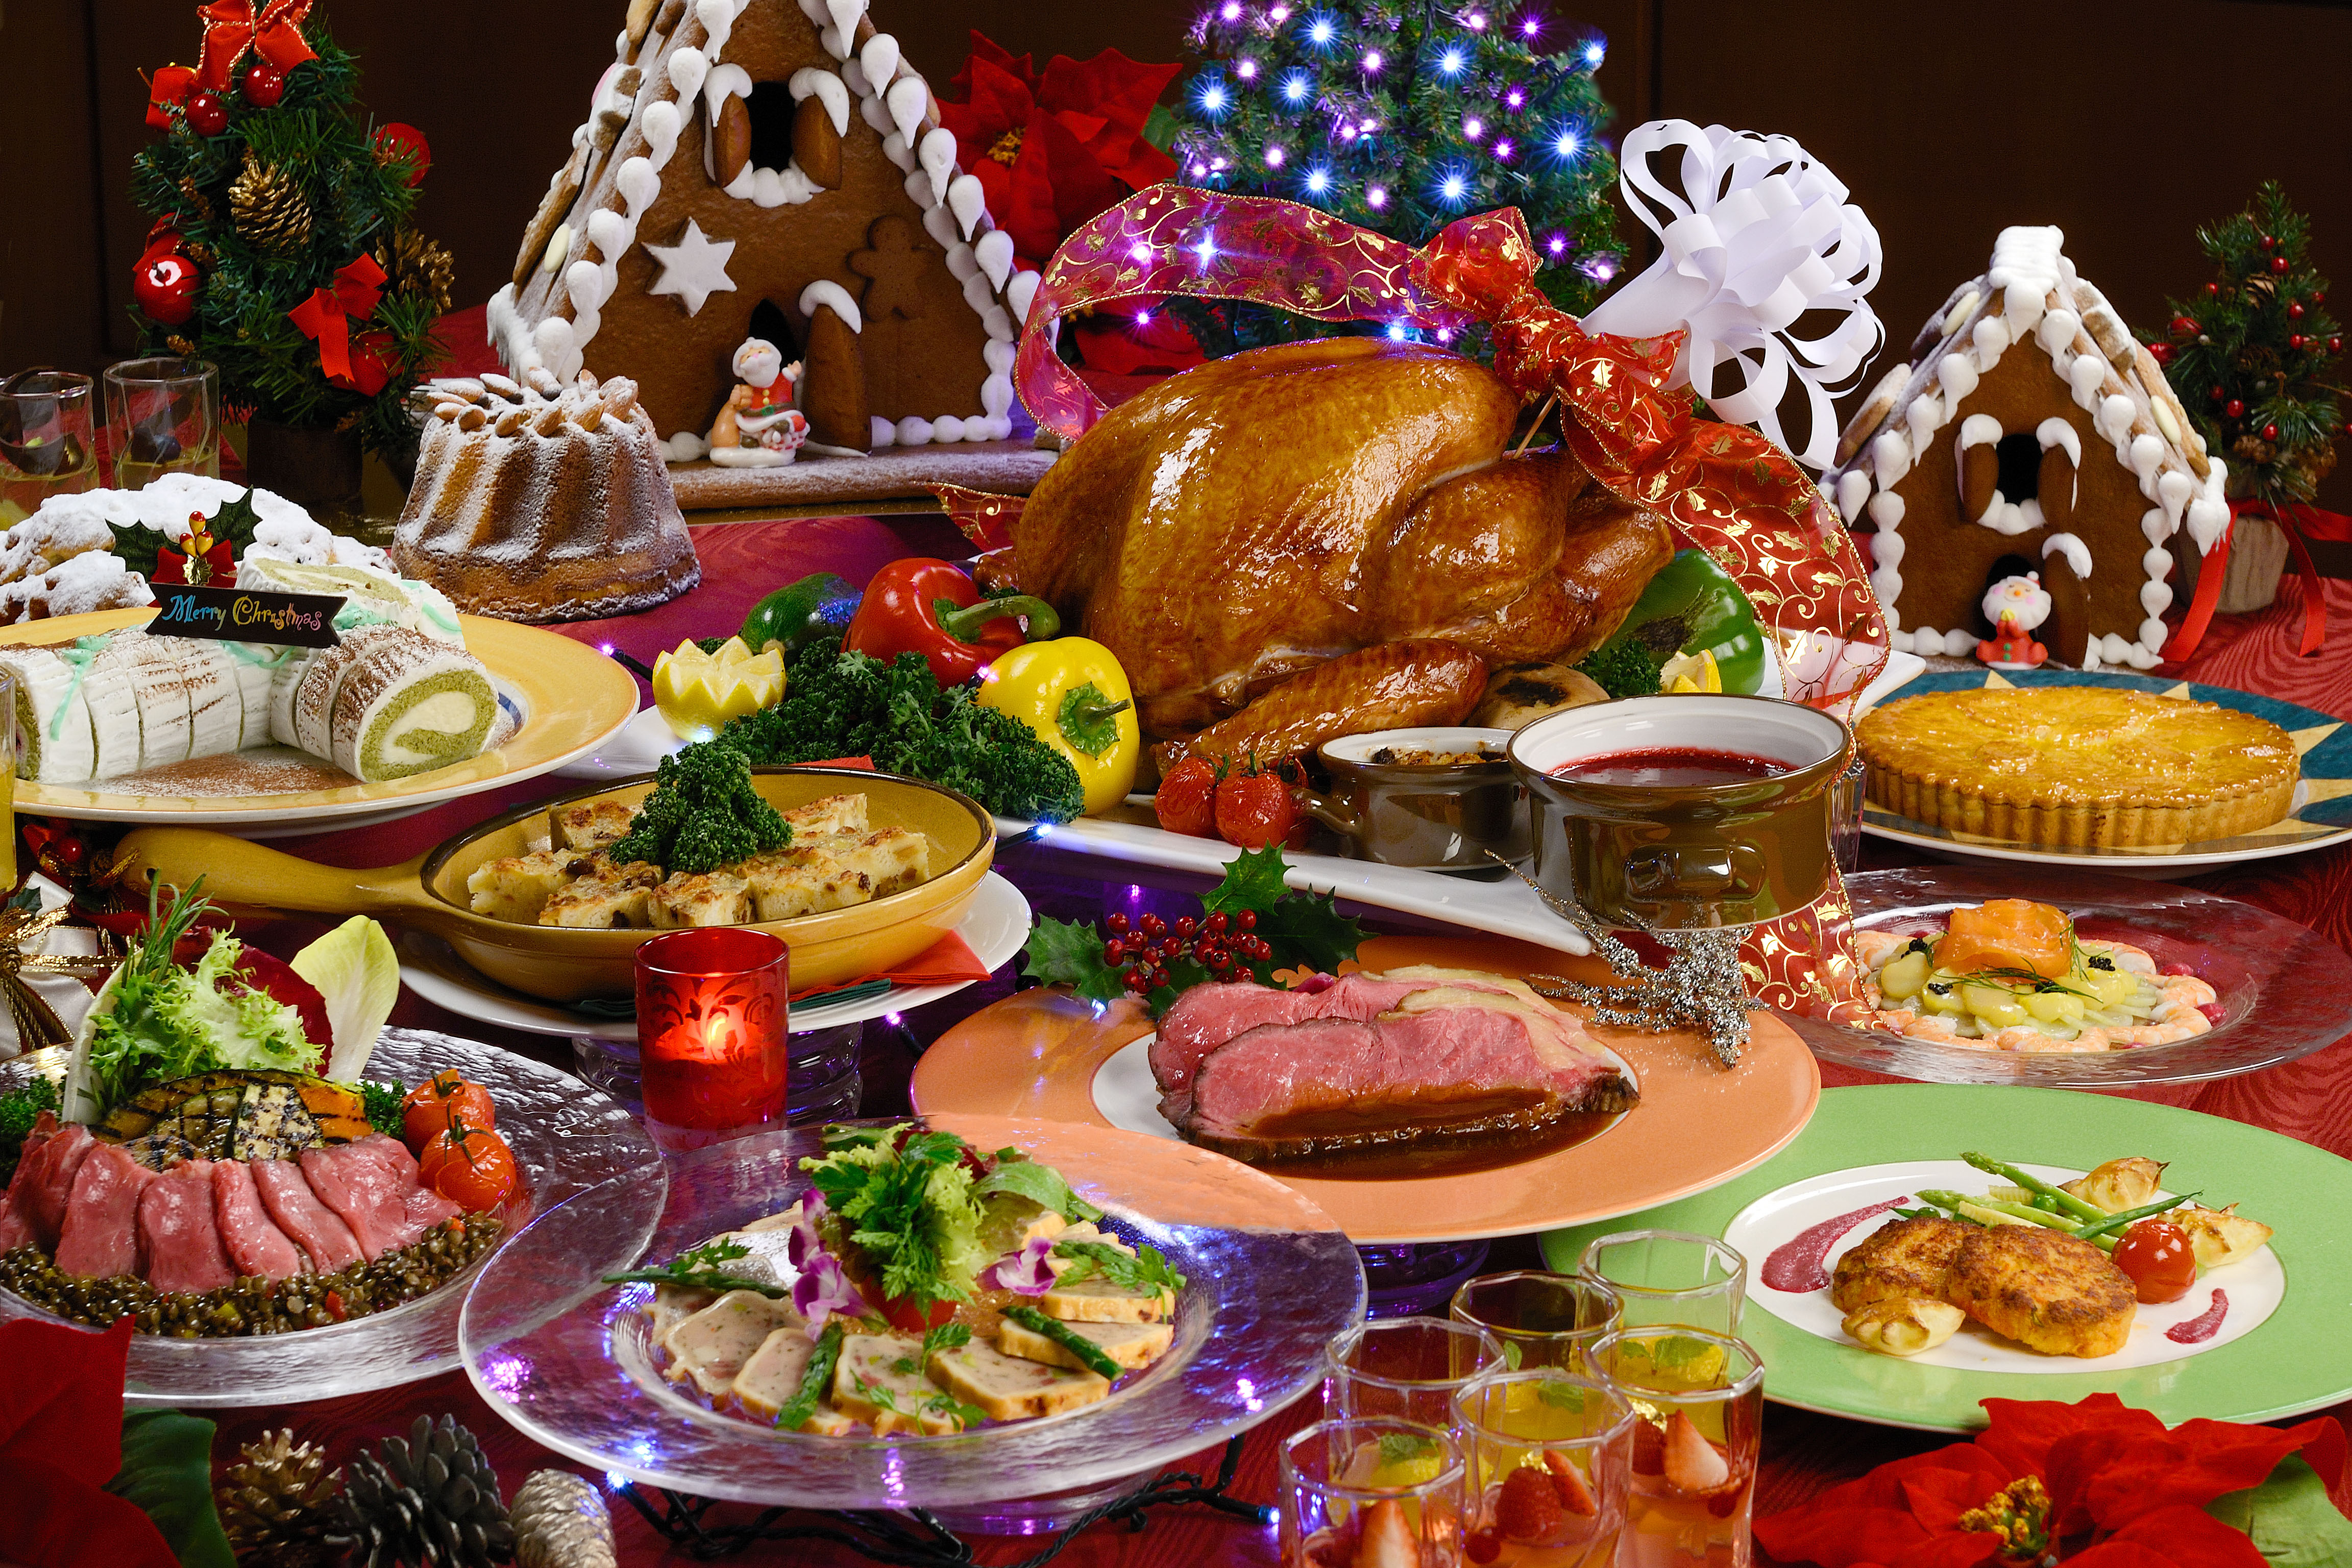 Talking turkey: The Checkers brasserie at Hilton Osaka is one of many Kansai restaurants offering a mouthwatering seasonal spread over the holidays. Other options range from traditional Italian dishes at Via Transito in Kyoto to the Oriental Hotel in Kobe's Peking Duck.